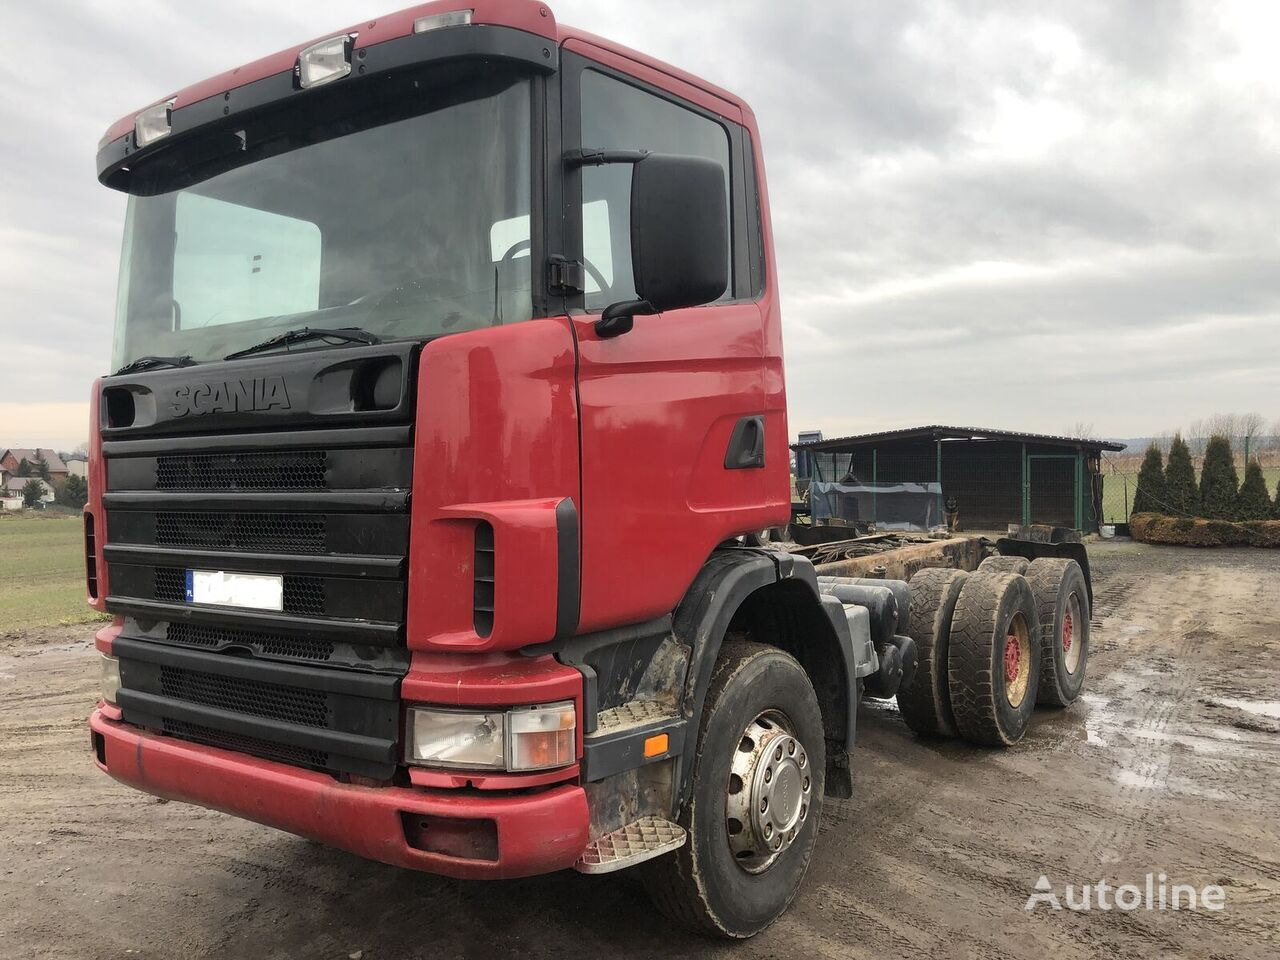 SCANIA 124 400 6x4 chassis truck